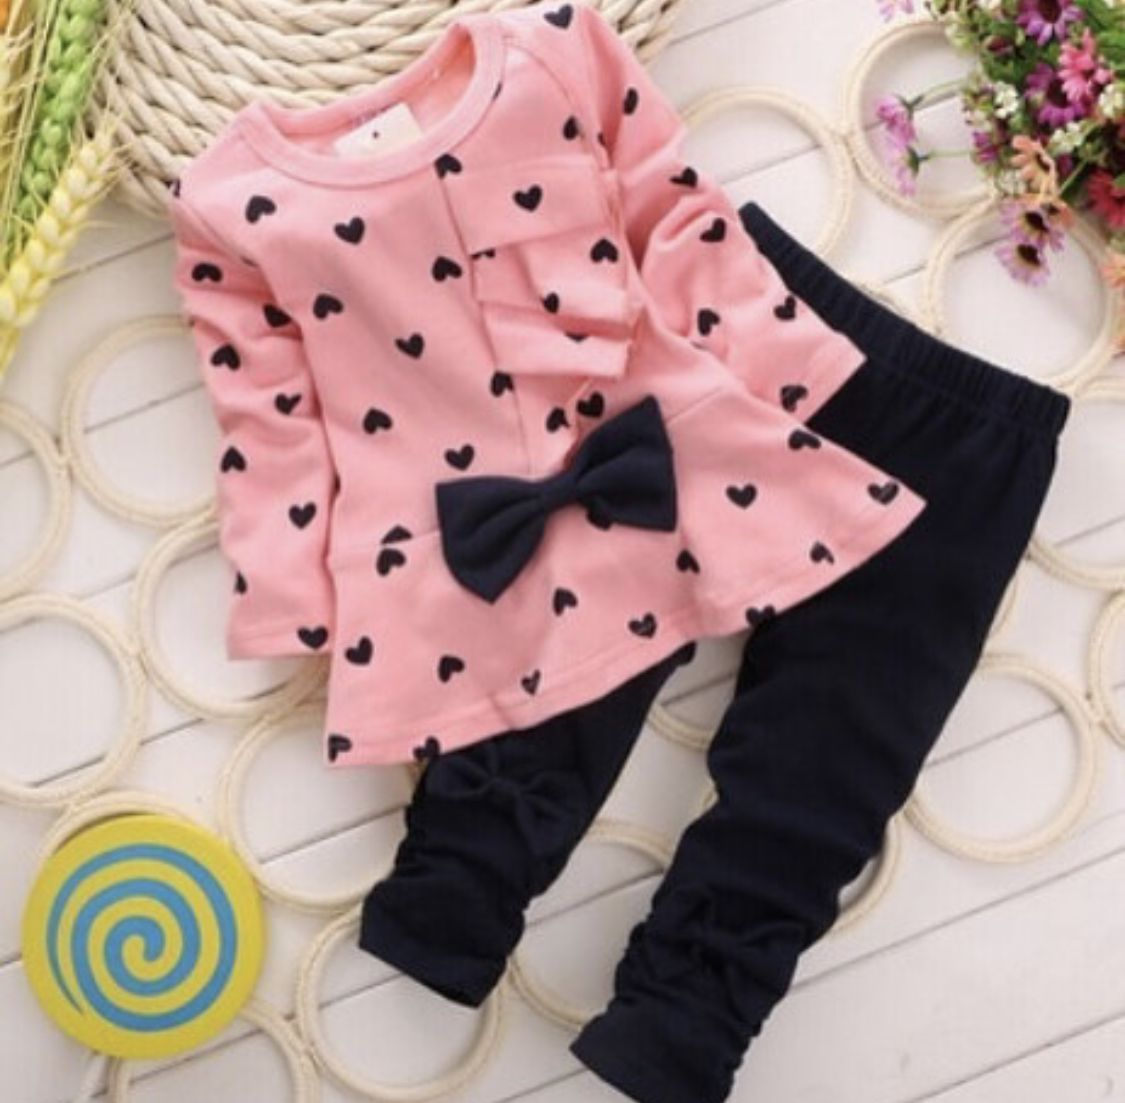 Beautiful pink and dark navy 2pc set. Top- front bow with a touch of side ruffle. Pants- both legs scrunched.  Cotton & Polyester   #babygirl #frontbow #babyapparel #onlineshopping #scrunchedleggings #2pcset #littlegirl #childrensboutique #onlineboutique #shoppingonline #shopnow #childrensonlineboutique #onlinestore #childrensonlinestore #shoppingchildren